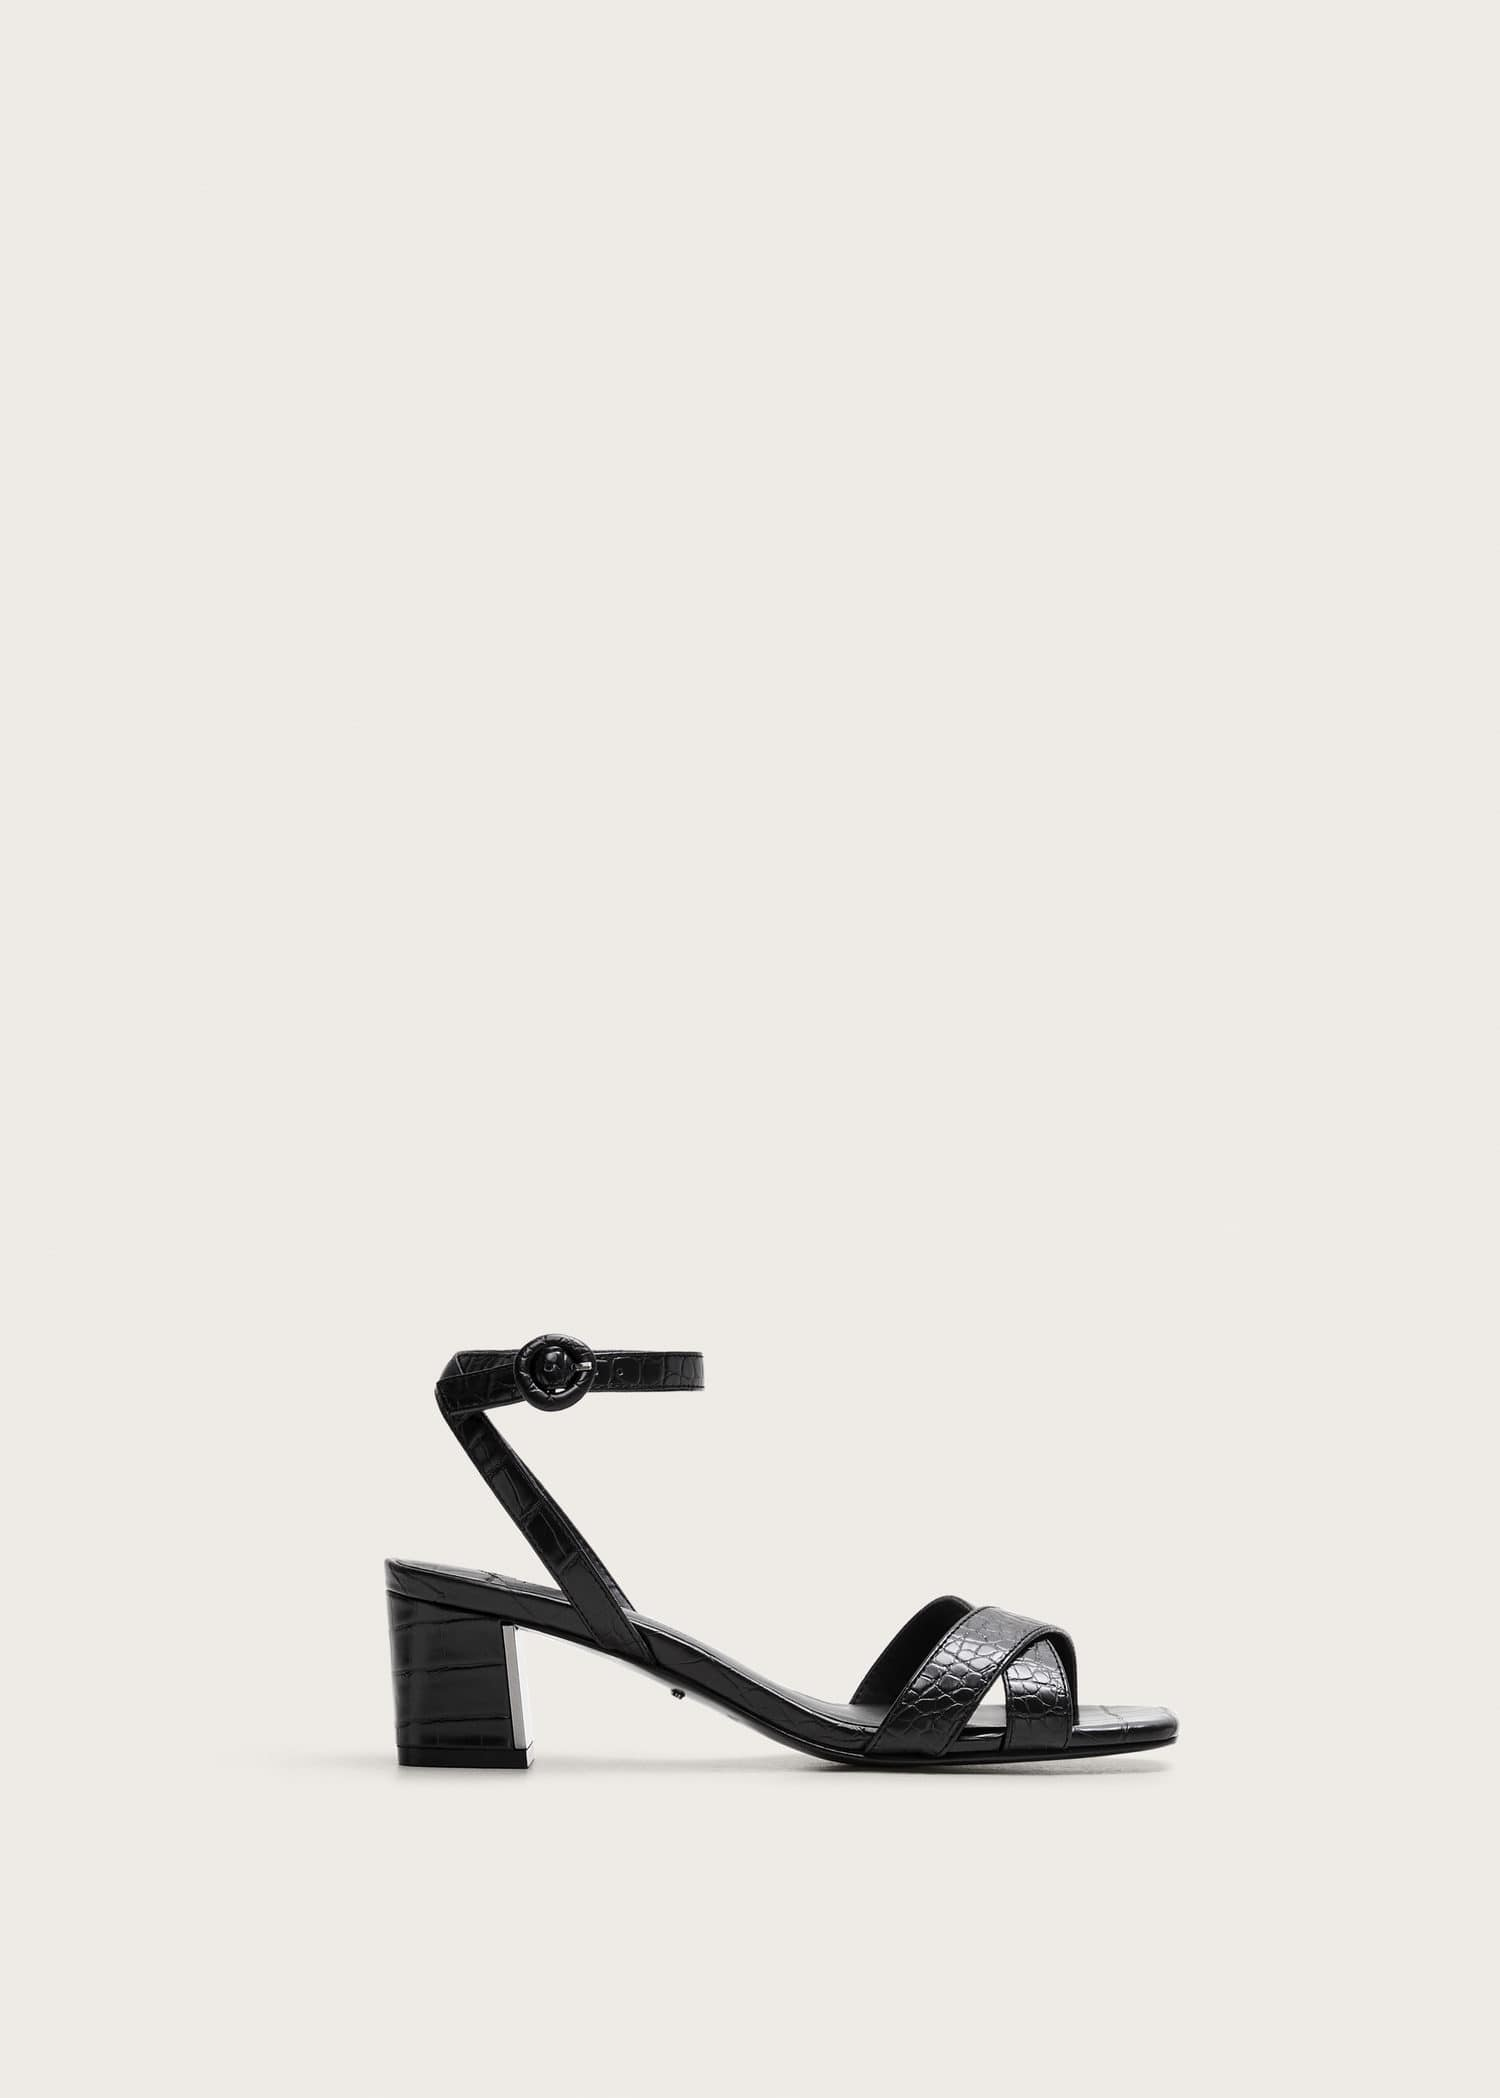 Strappy heeled sandals - Shoes Plus